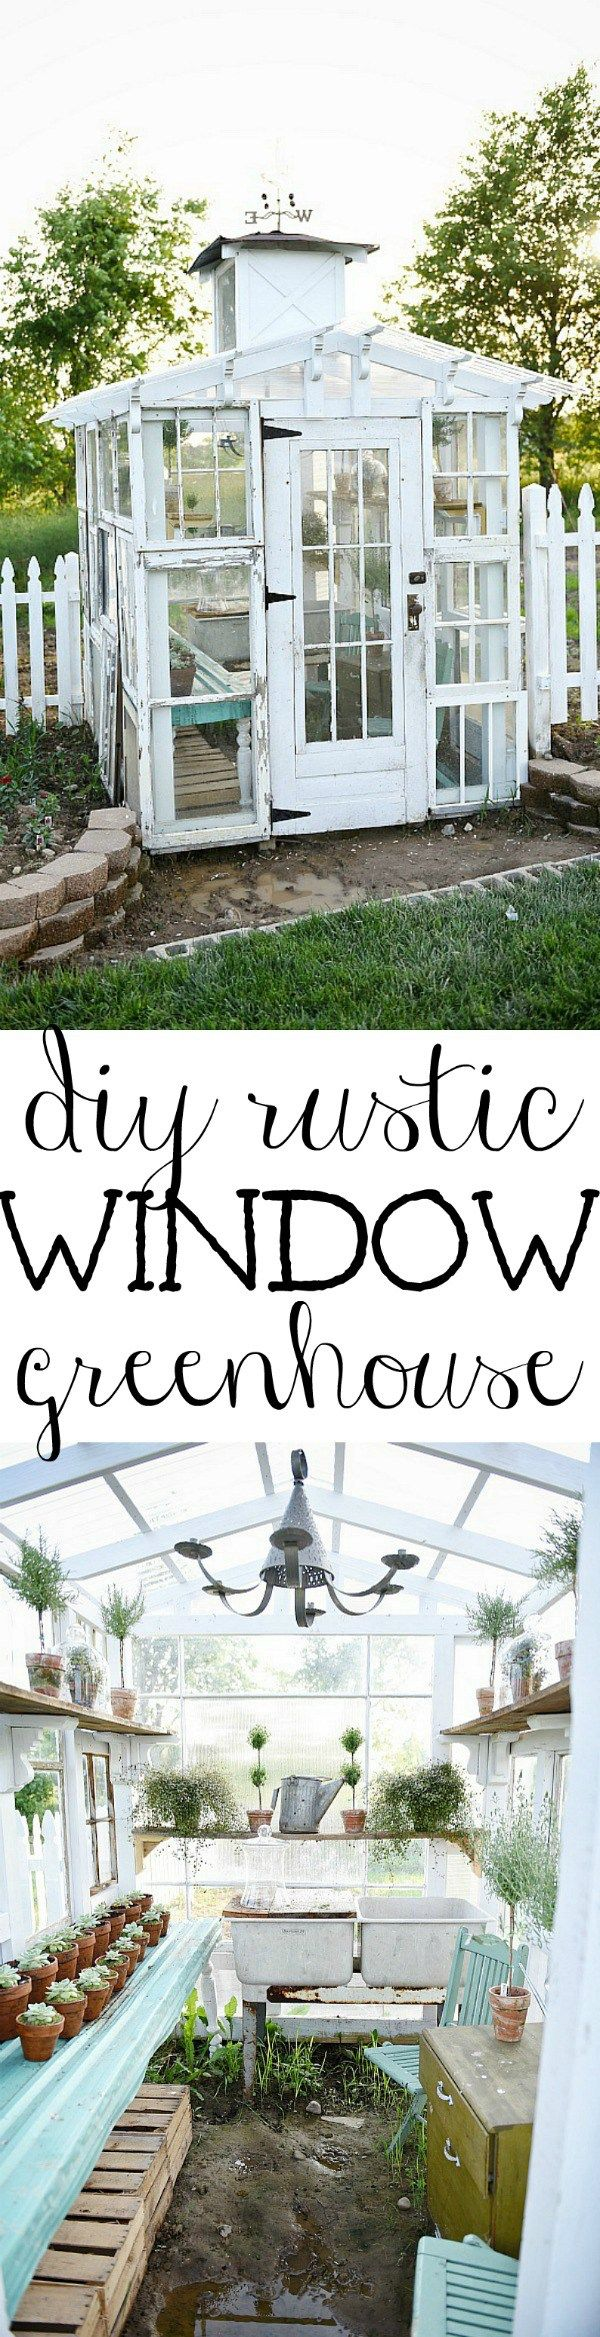 92 best Gardening ideas images on Pinterest | Landscaping, Home ...